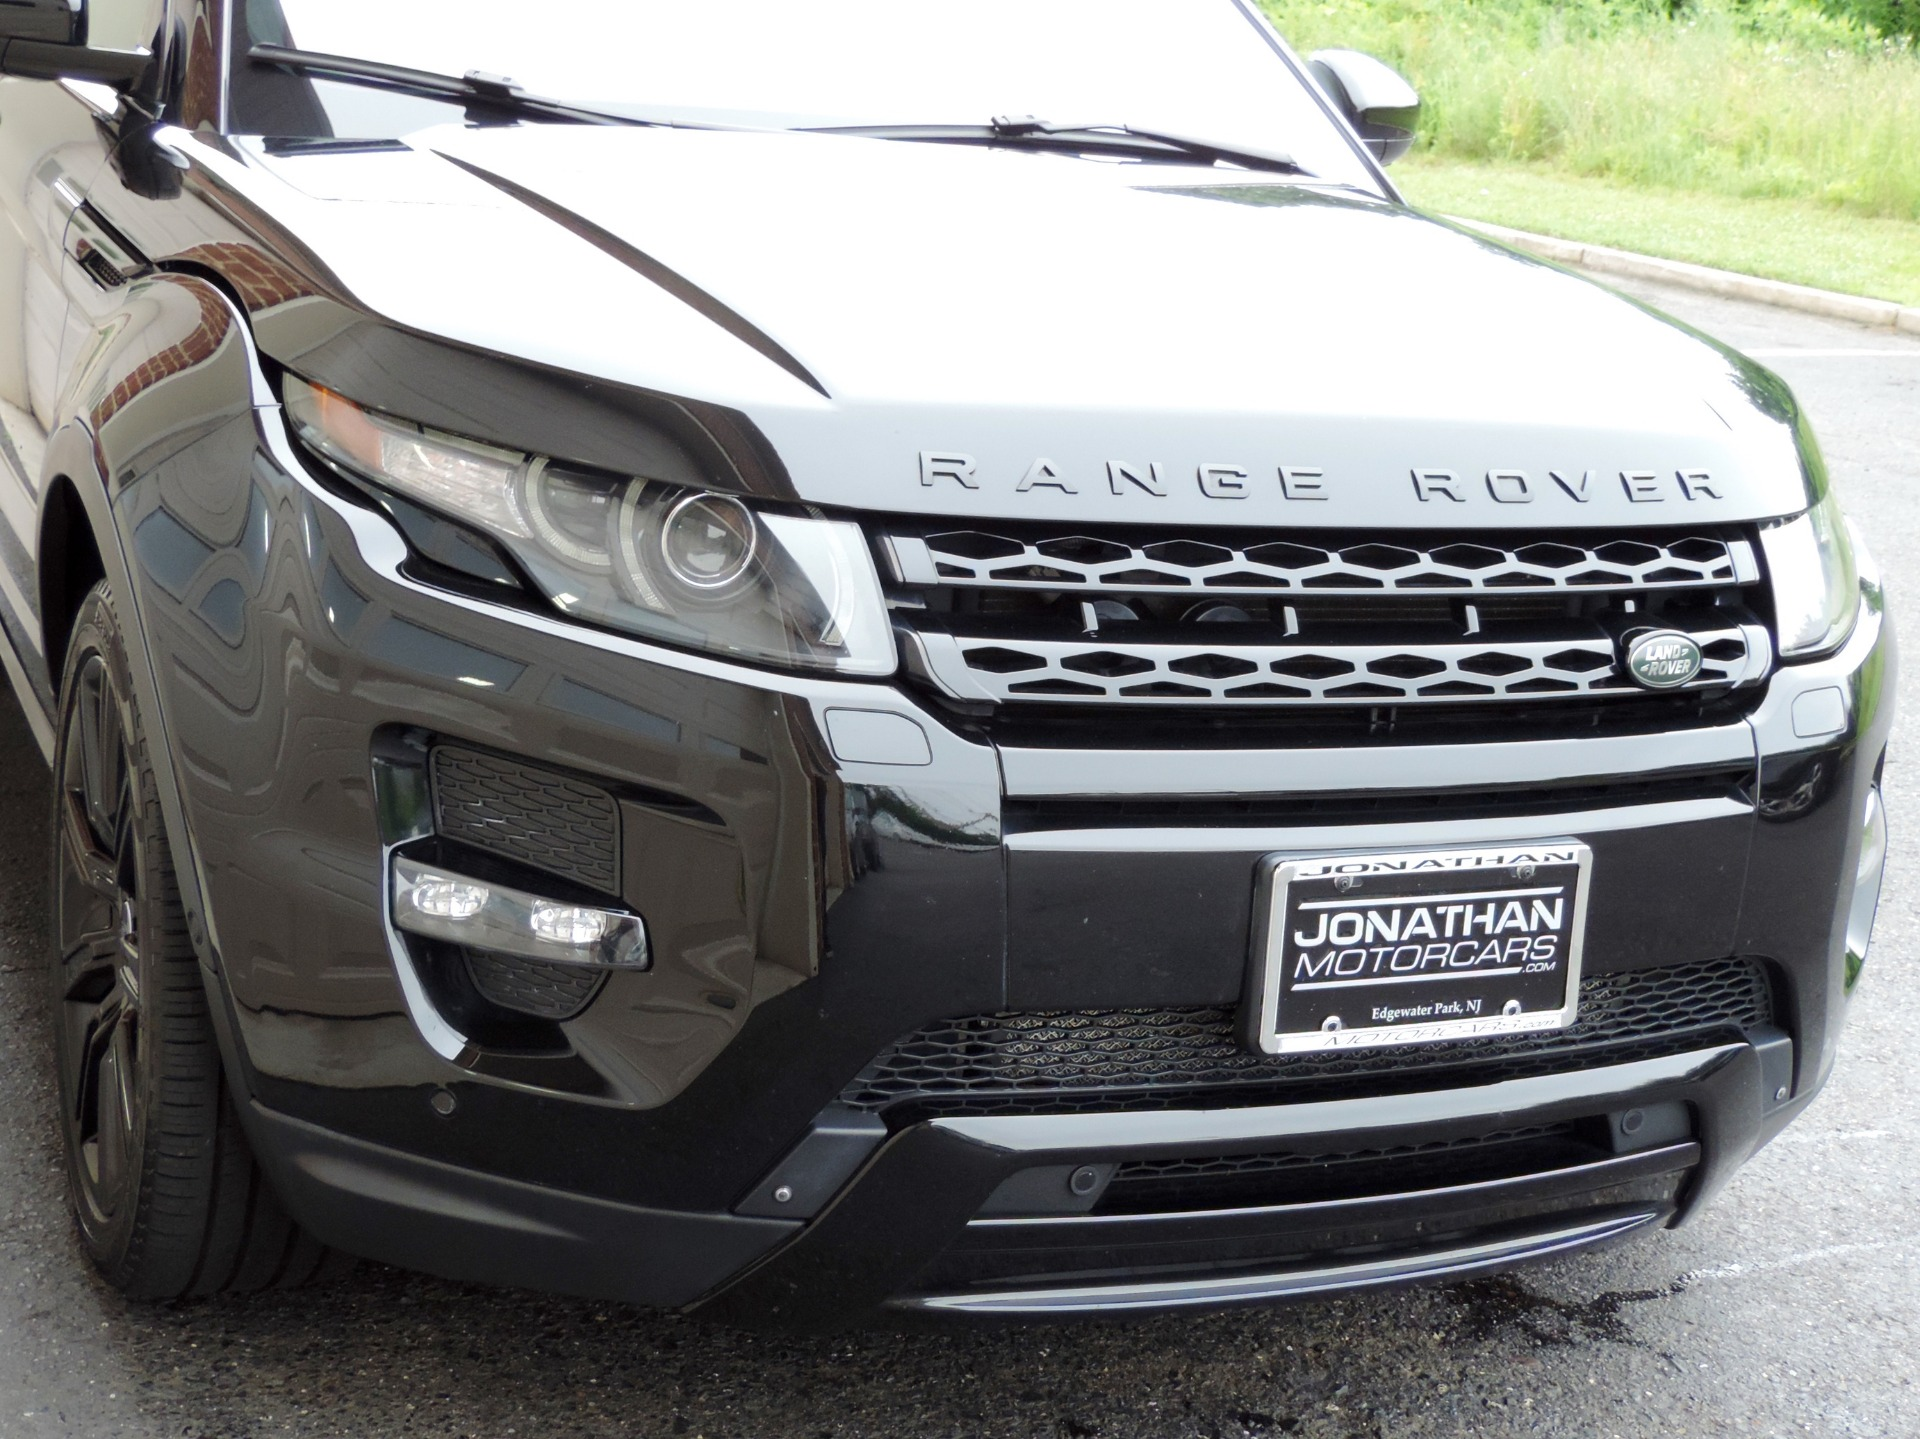 Used-2014-Land-Rover-Range-Rover-Evoque-Dynamic